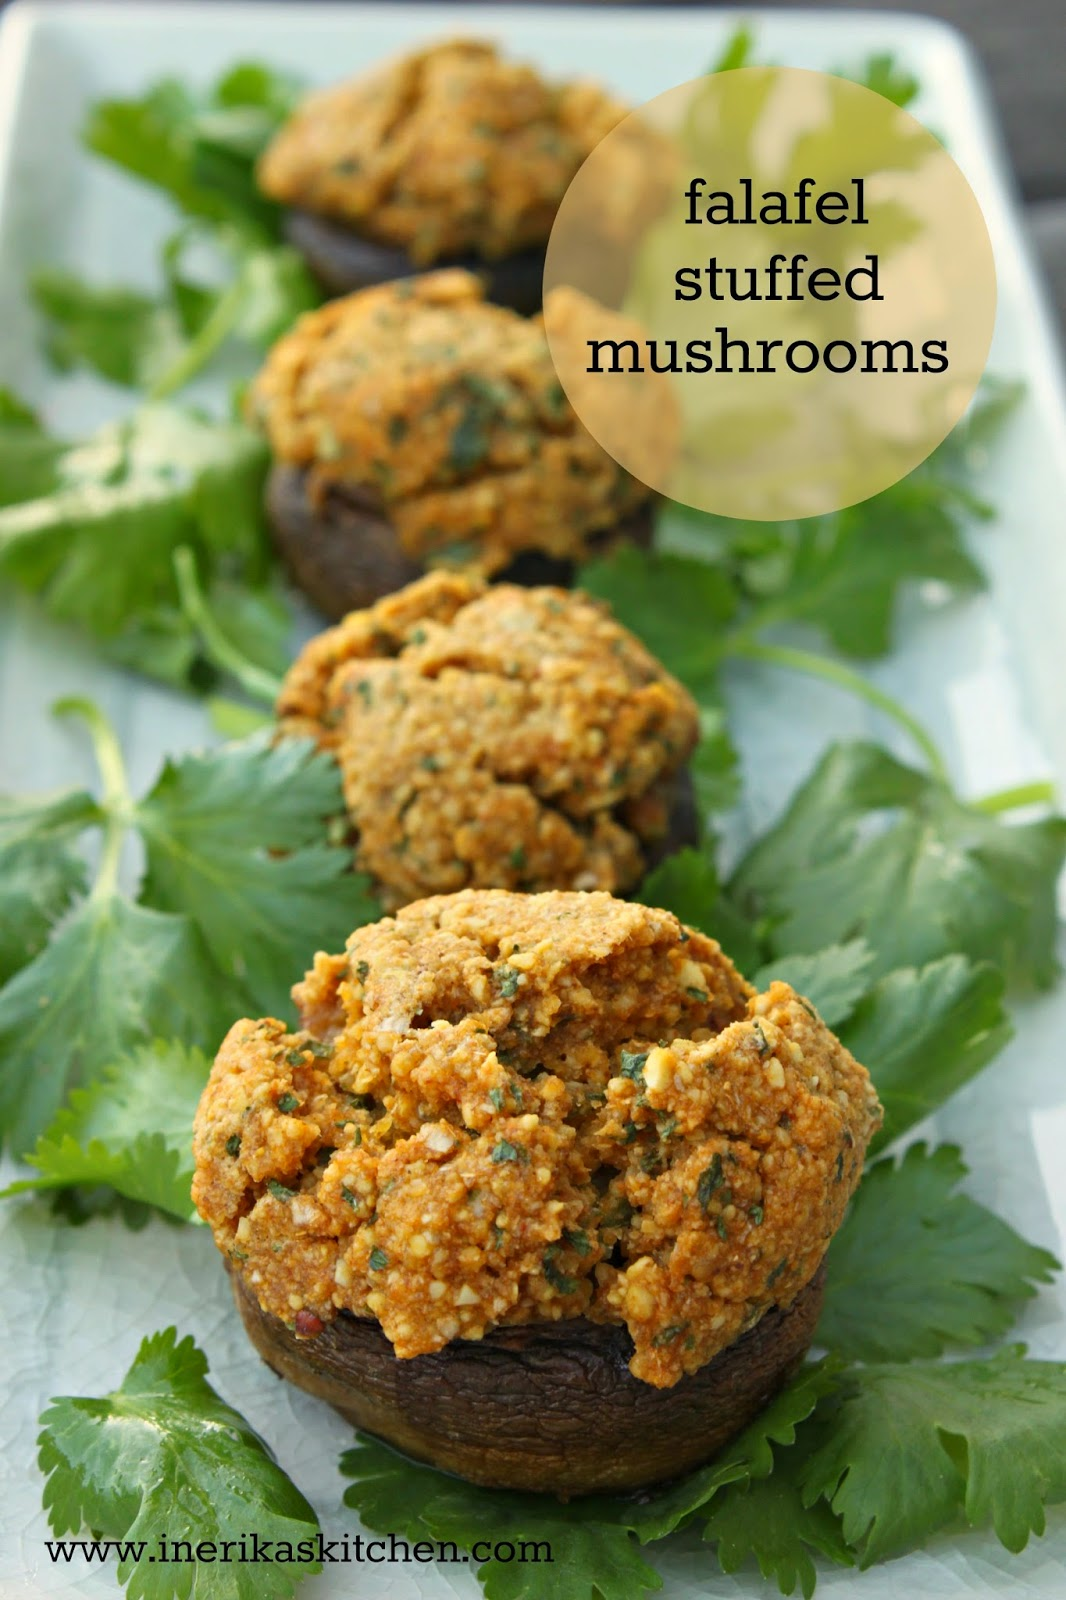 Falafel stuffed mushrooms from In Erika's Kitchen